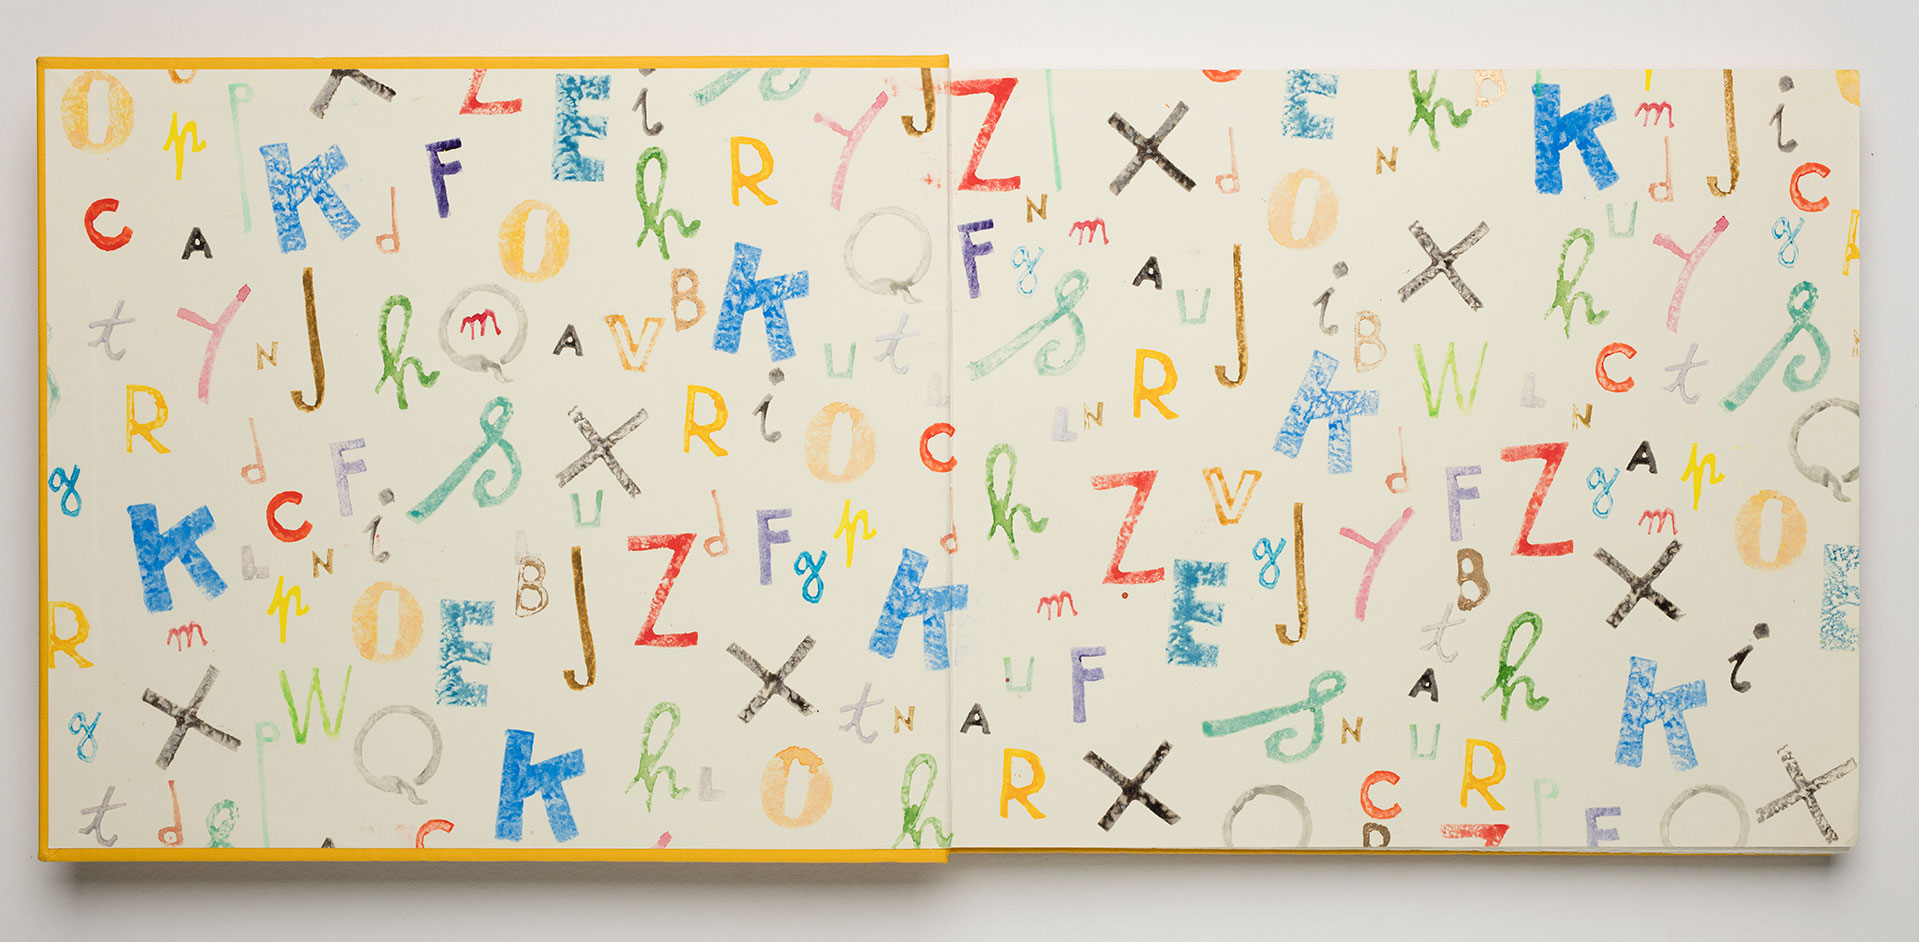 Endpapers with illustrated, colourful letters of the alphabet in various styles.